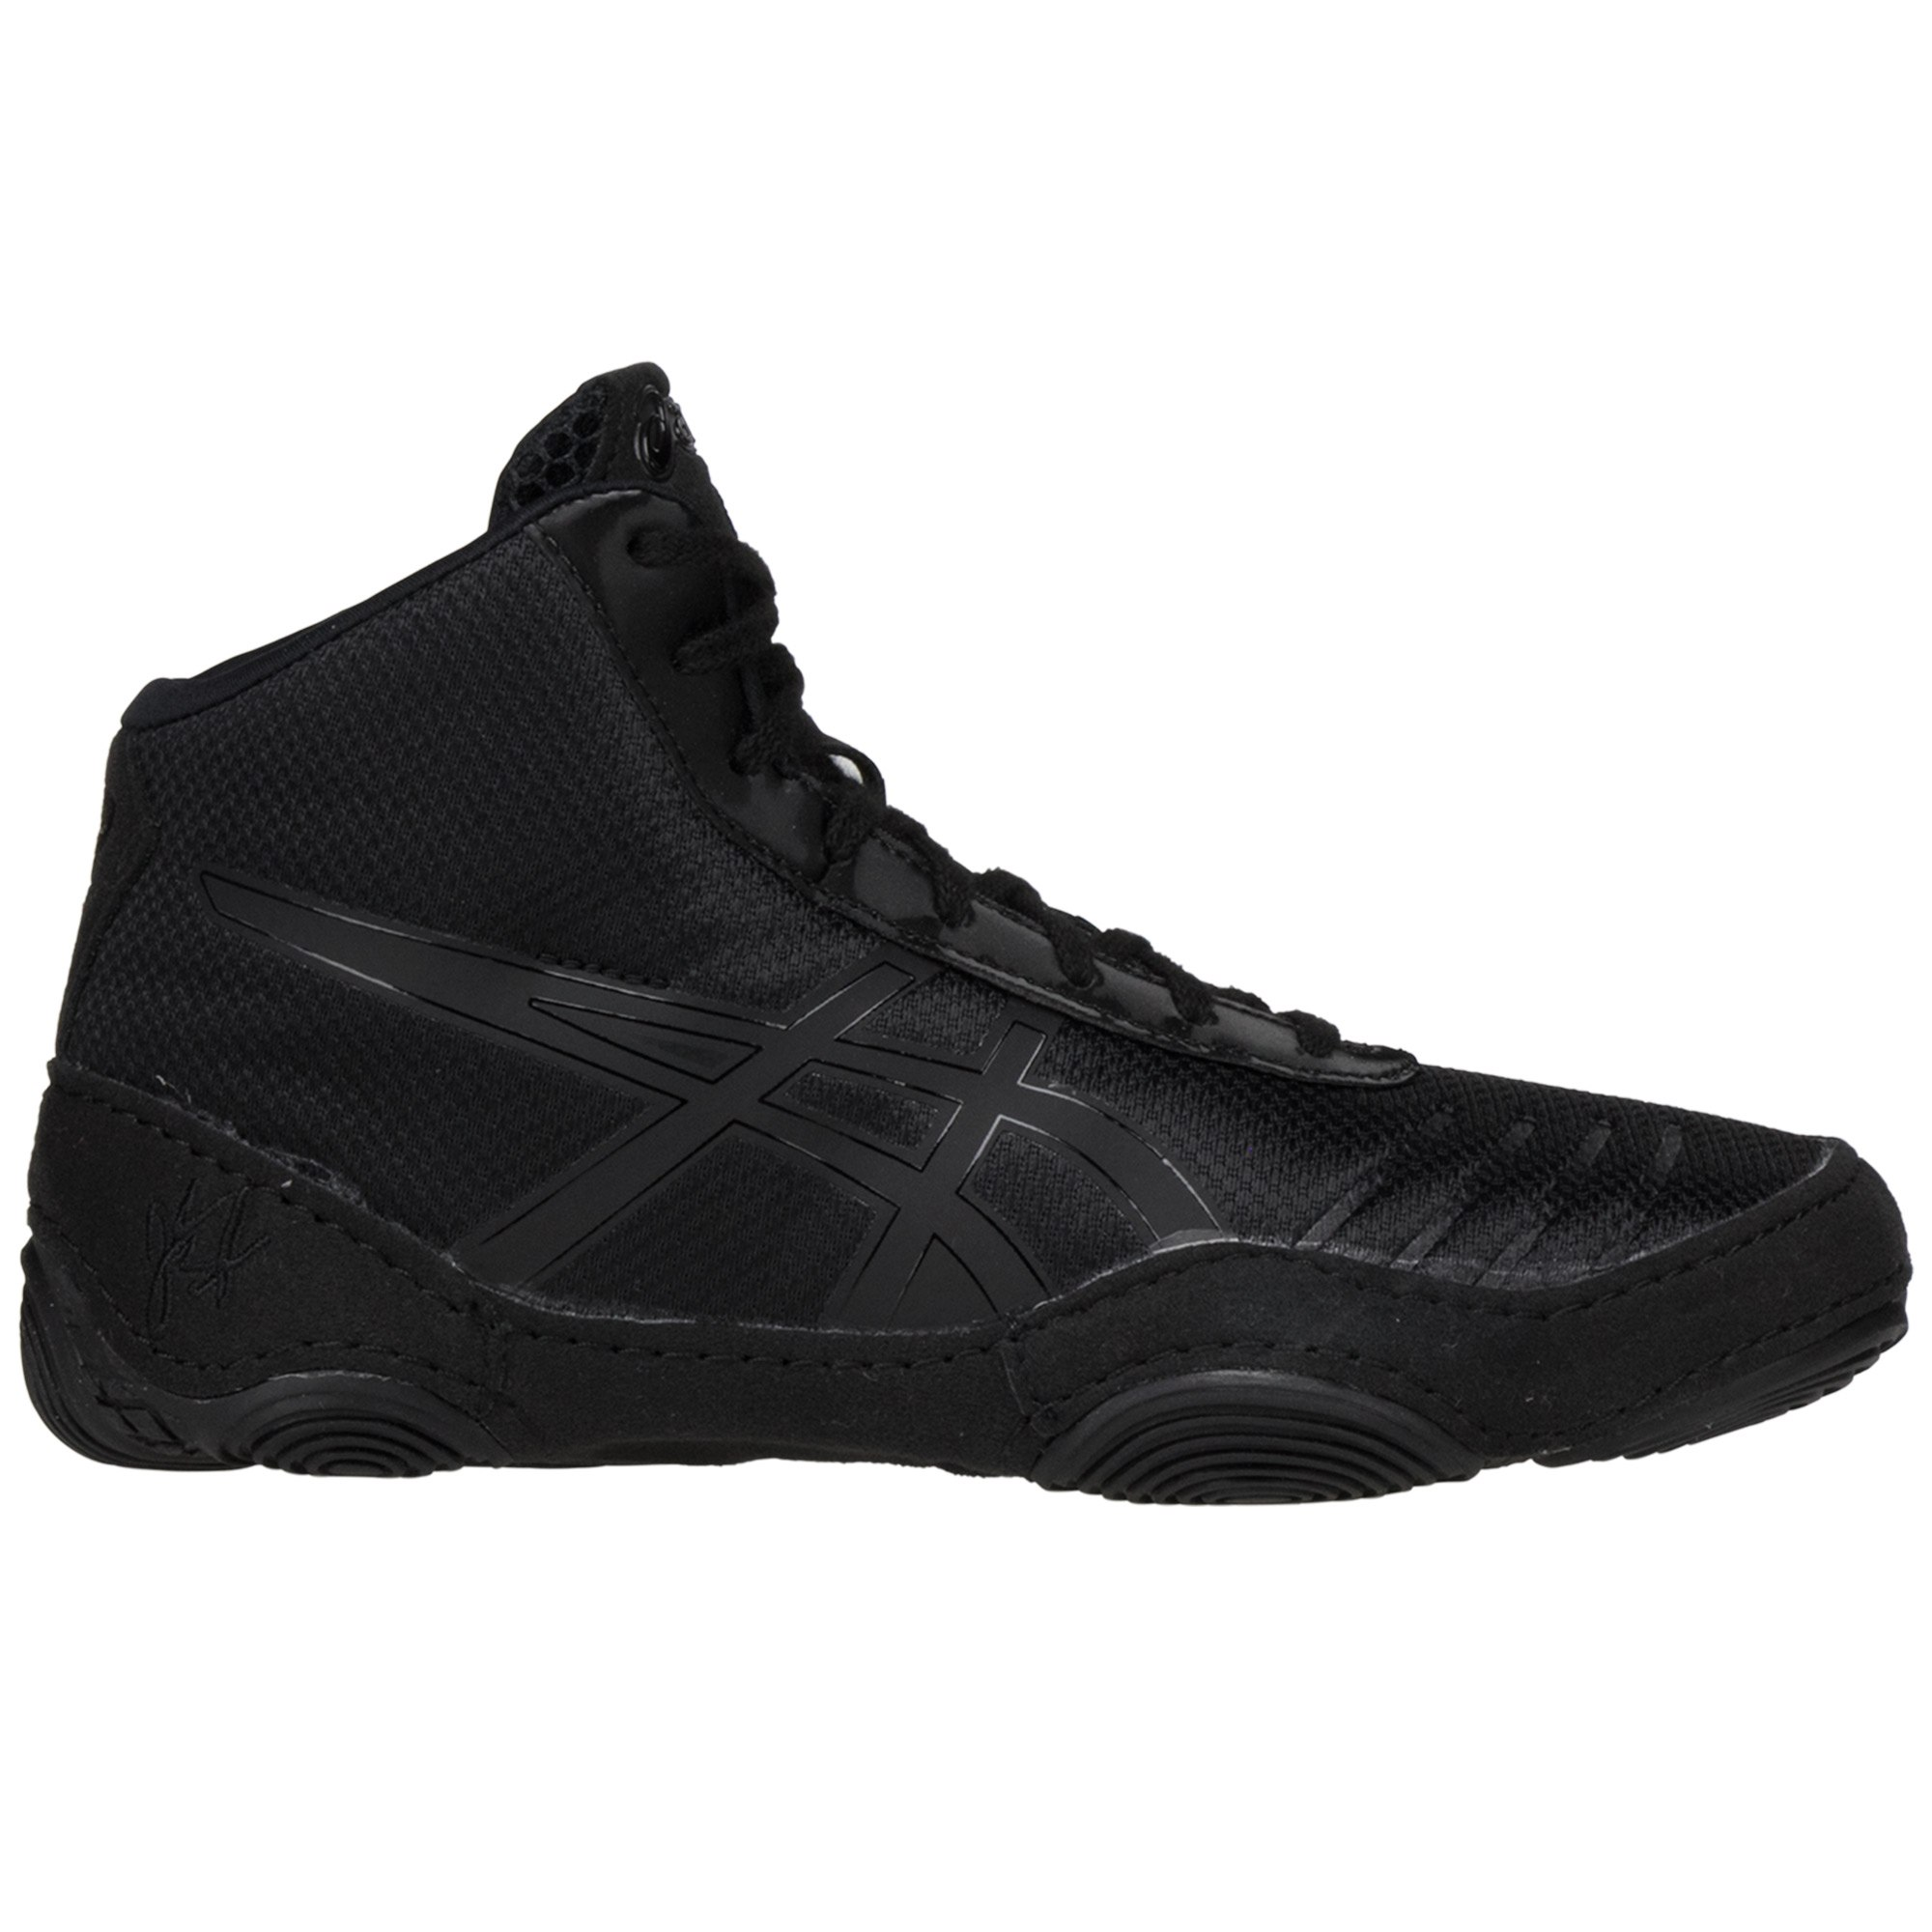 JB Elite V2 GS Shoes | WrestlingMart | Free Shipping